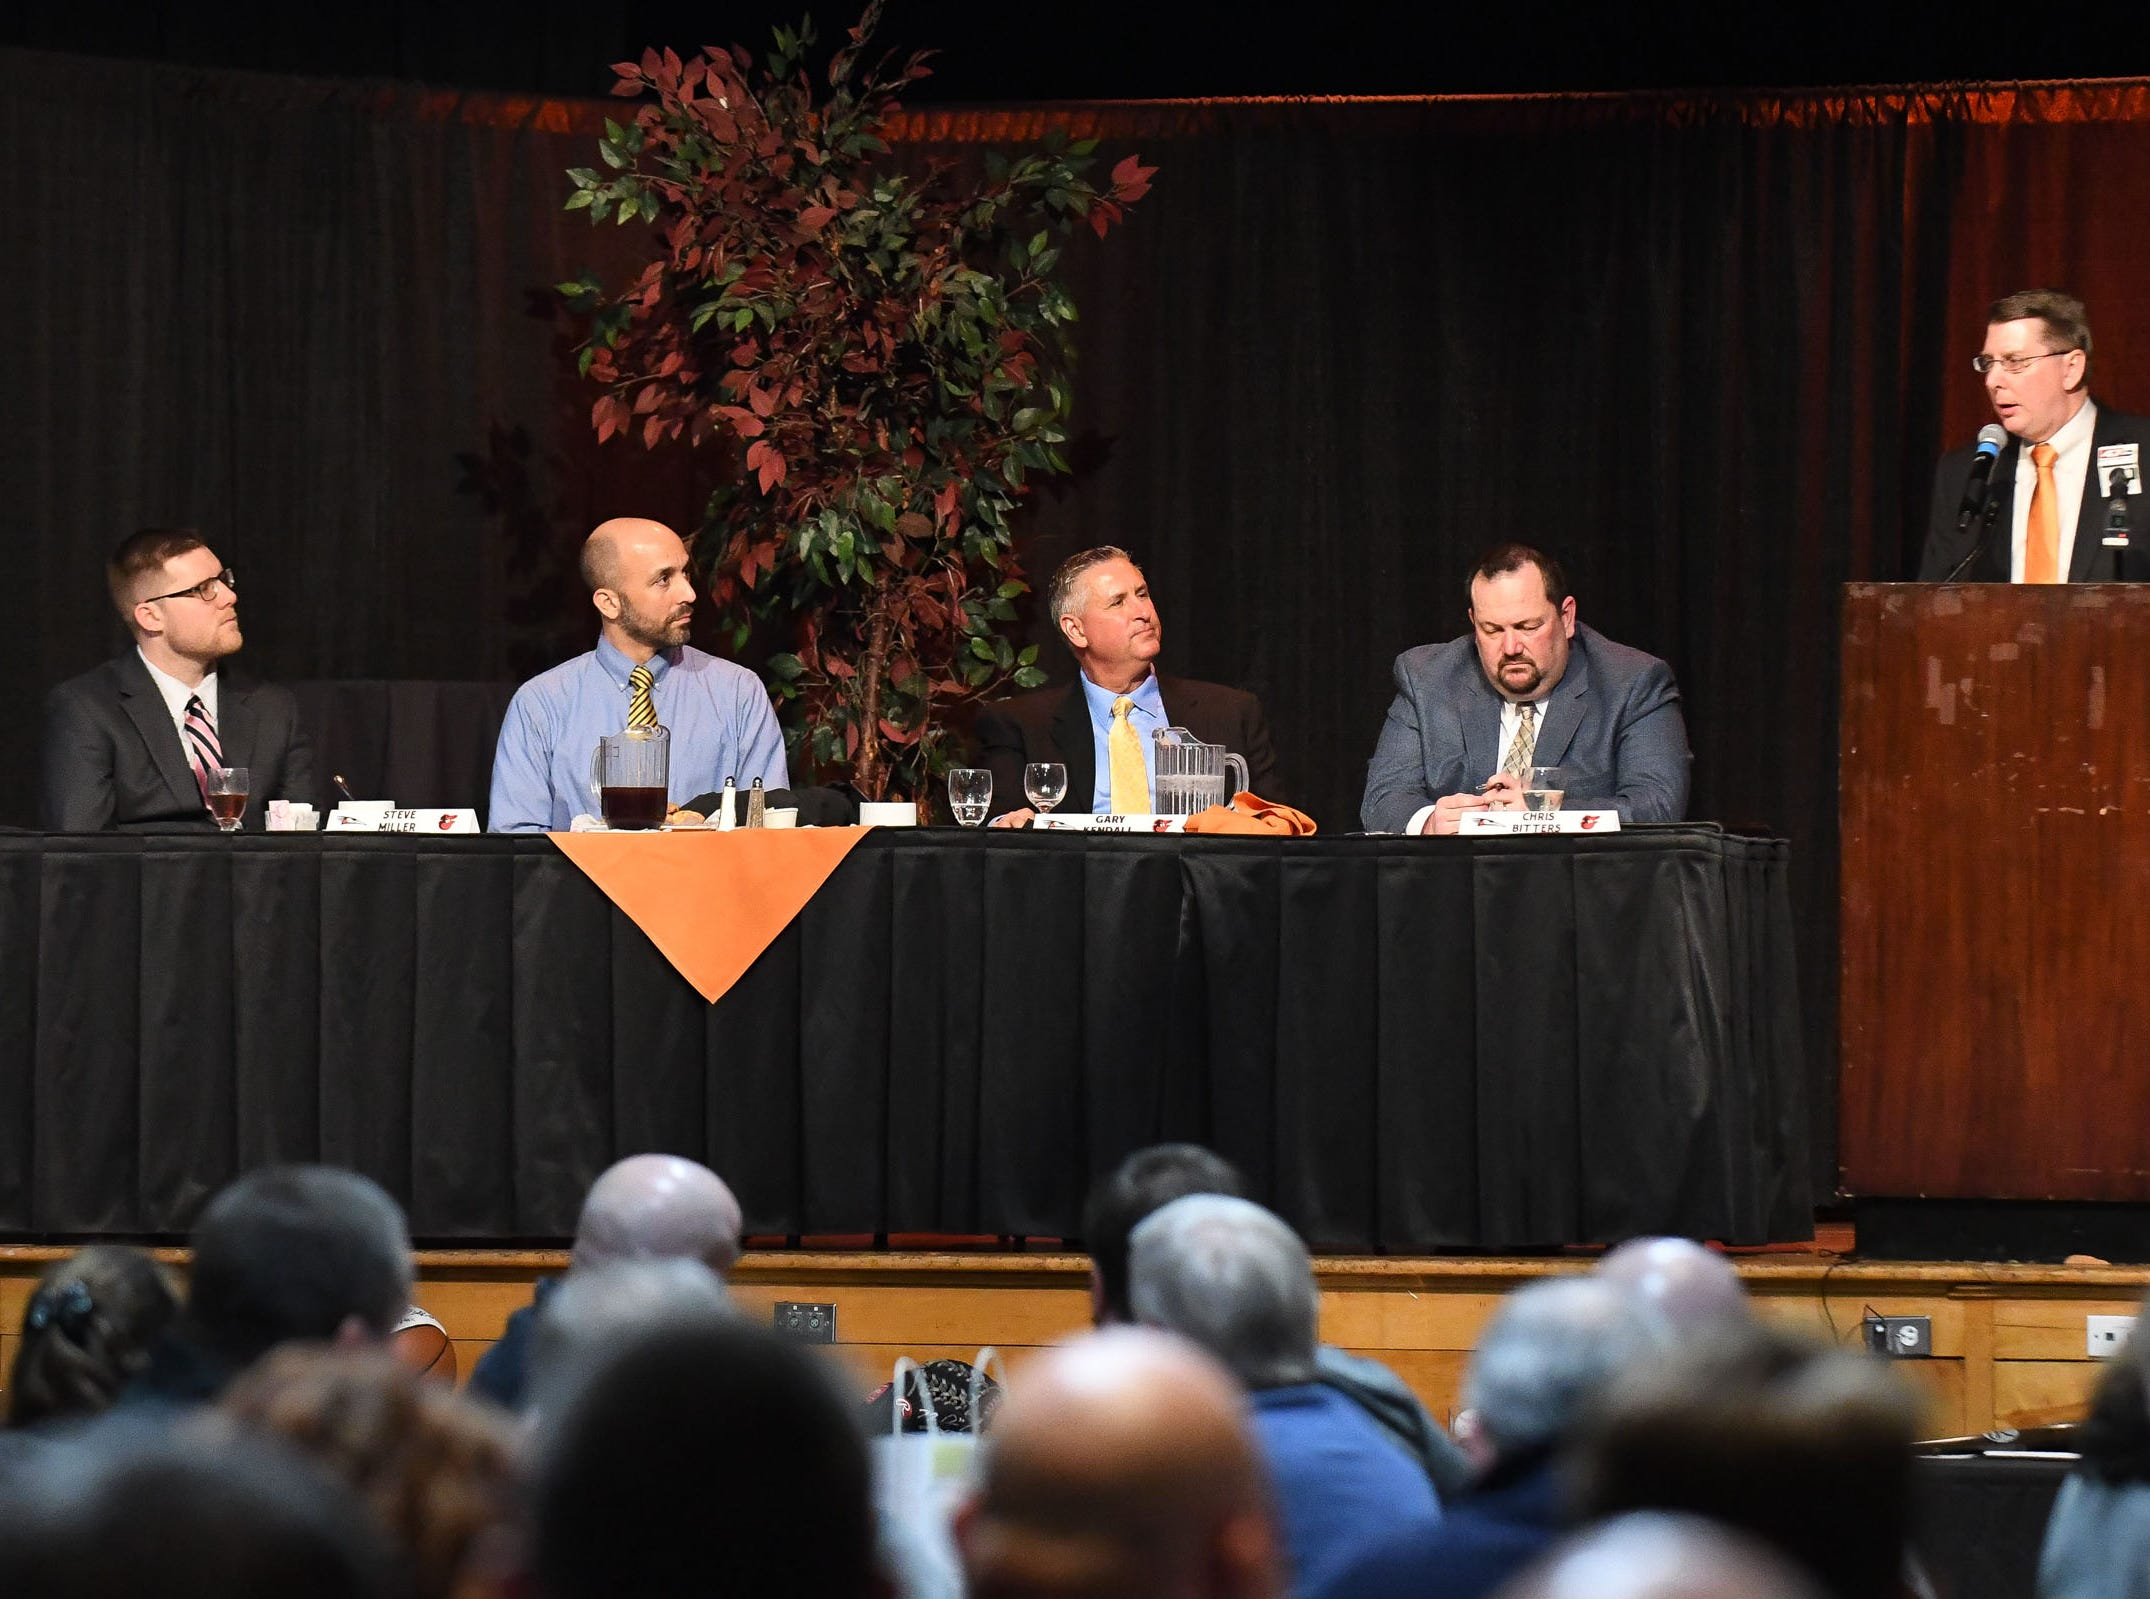 Kent Qualls, Orioles Director of Minor League Operations, speaks during the 18th annual Hot Stove Banquet on Thursday, Jan 24, 2019 at the Wicomico Youth & Civic Center.